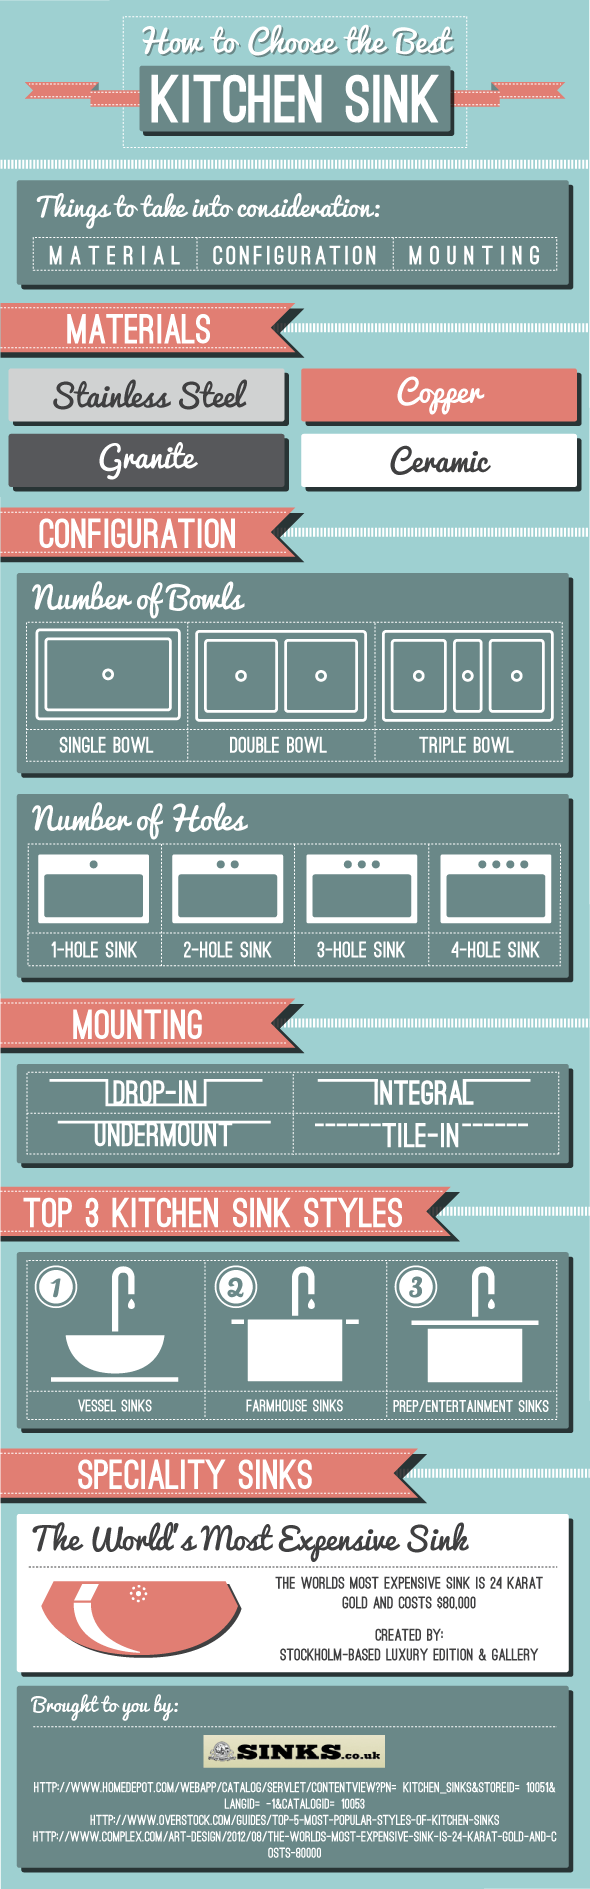 how-to-choose-the-best-kitchen-sink_51823fcaf0e46